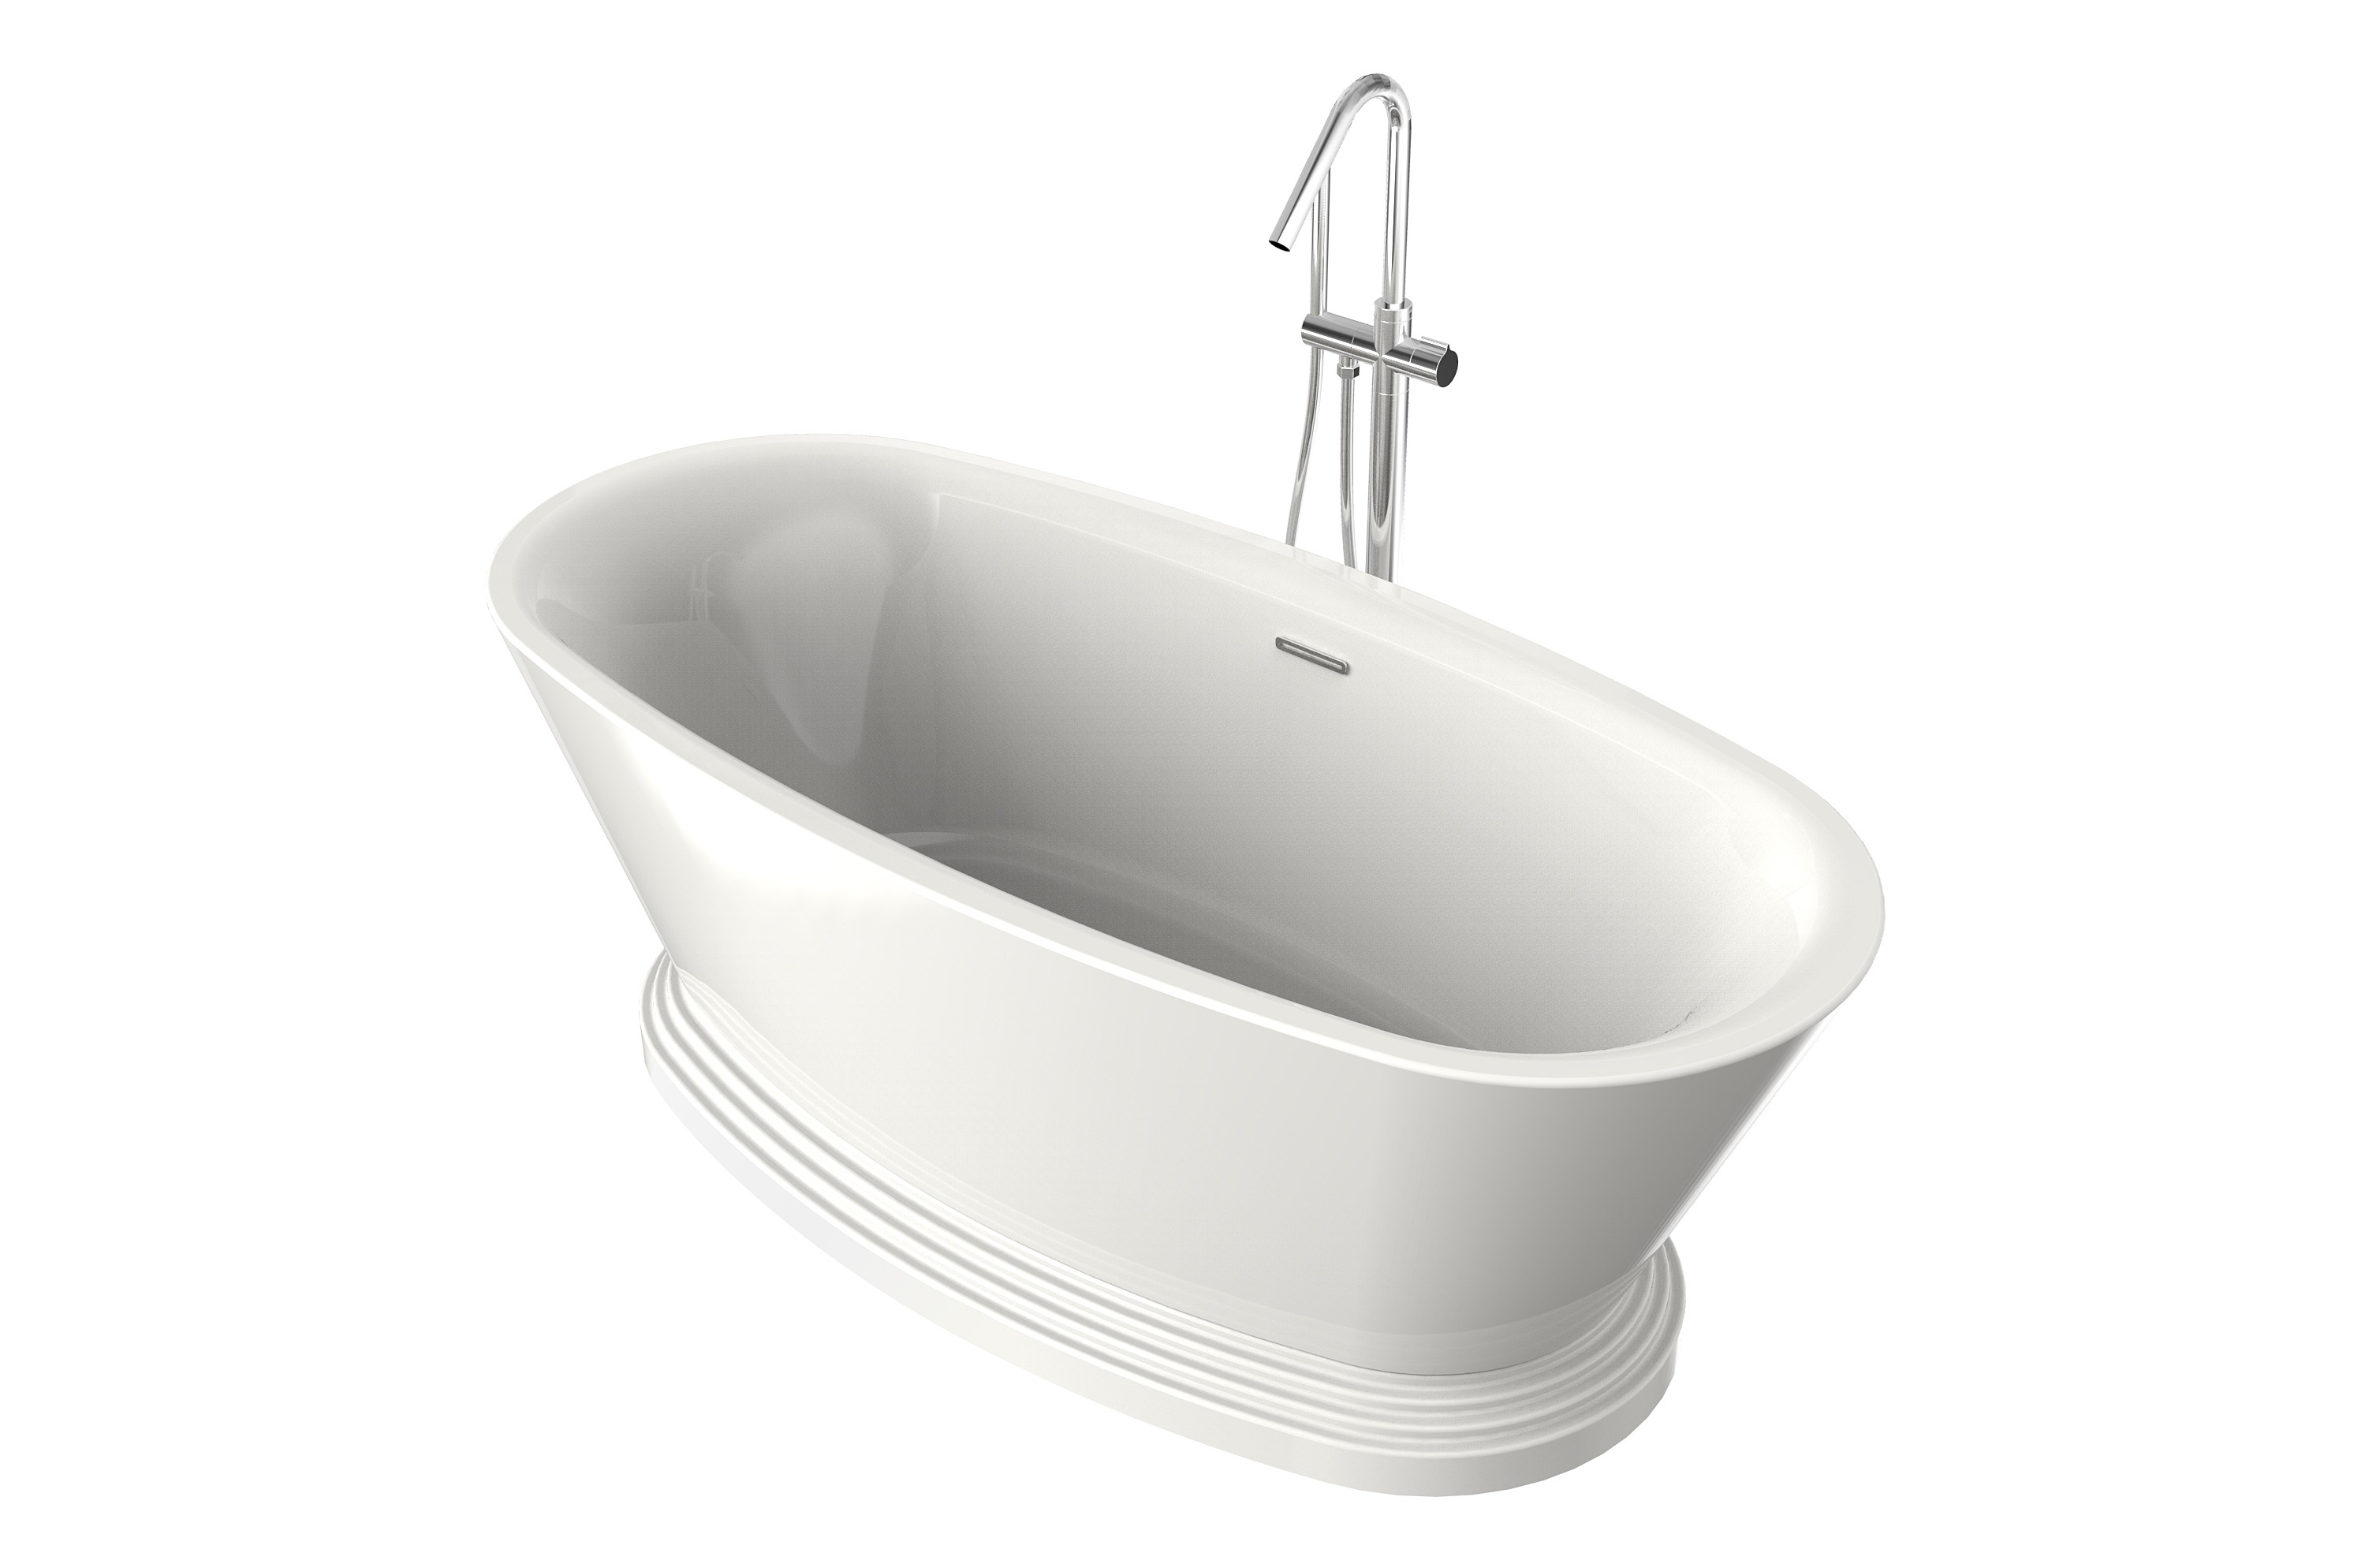 Elsa Oval Bathtub | AK Trading Home Options